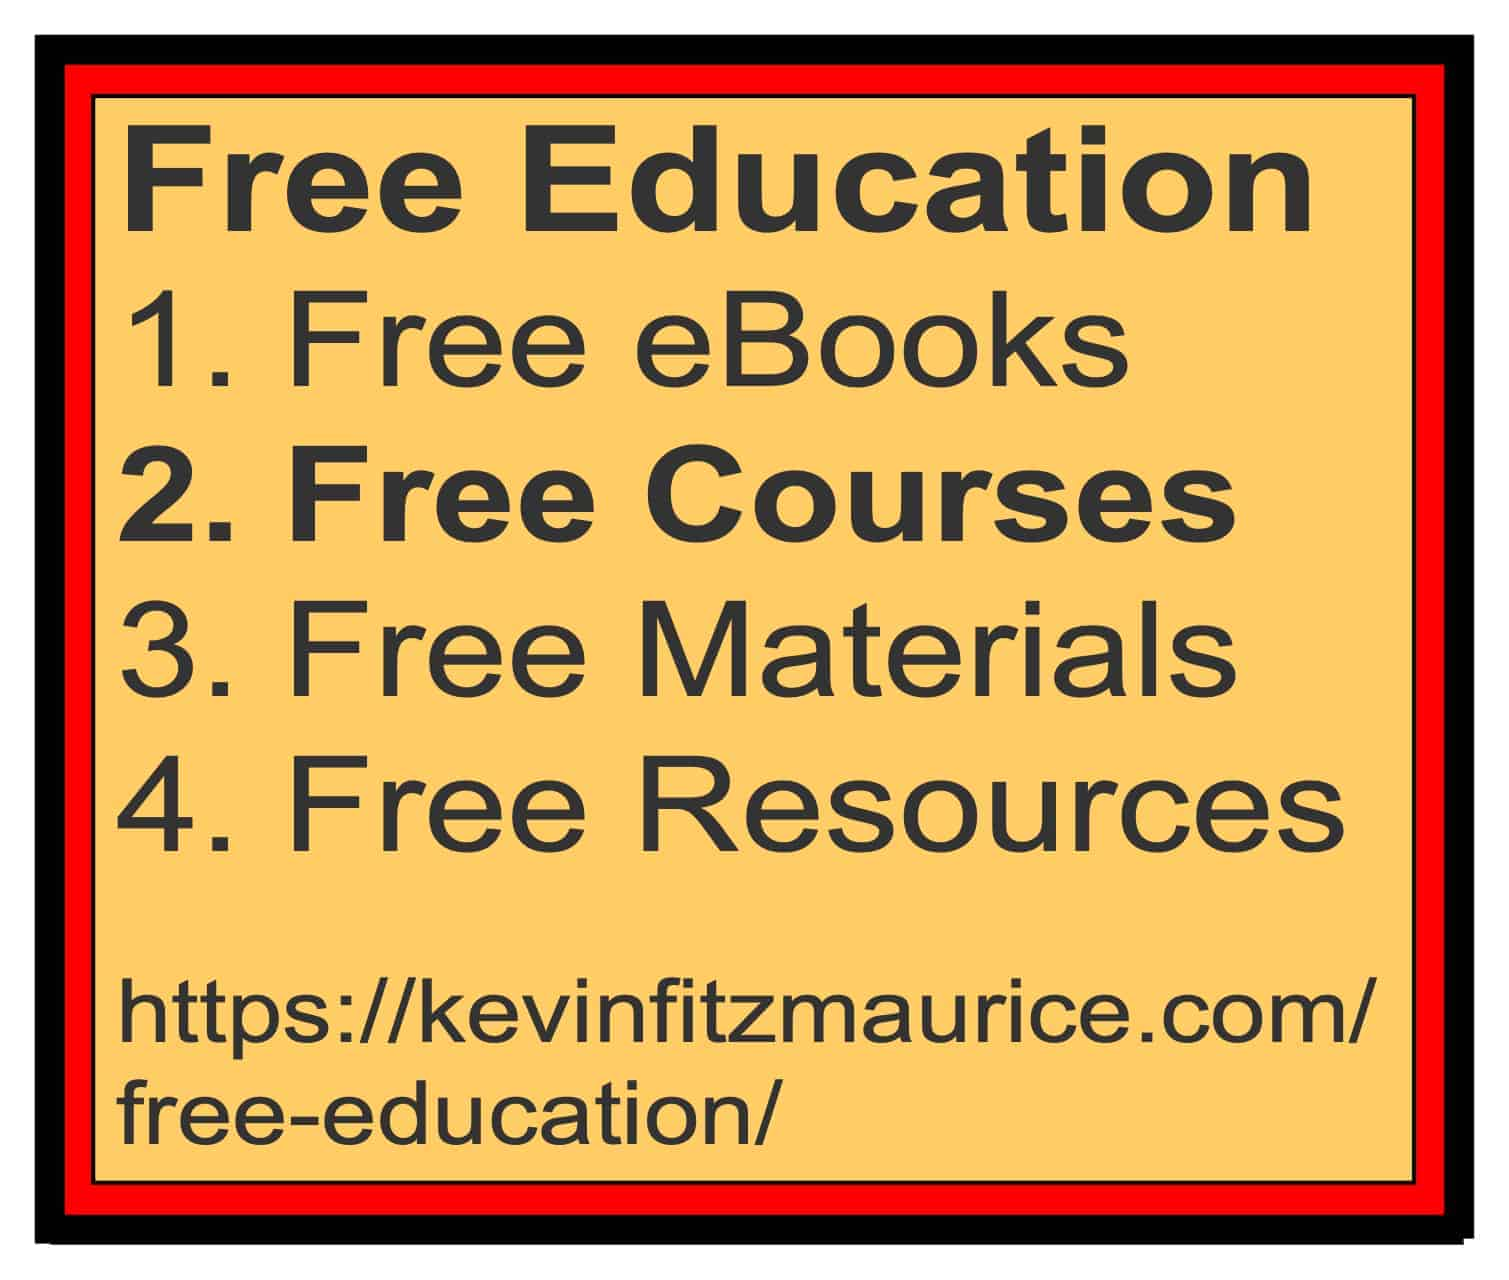 Free Education Lists for Courses